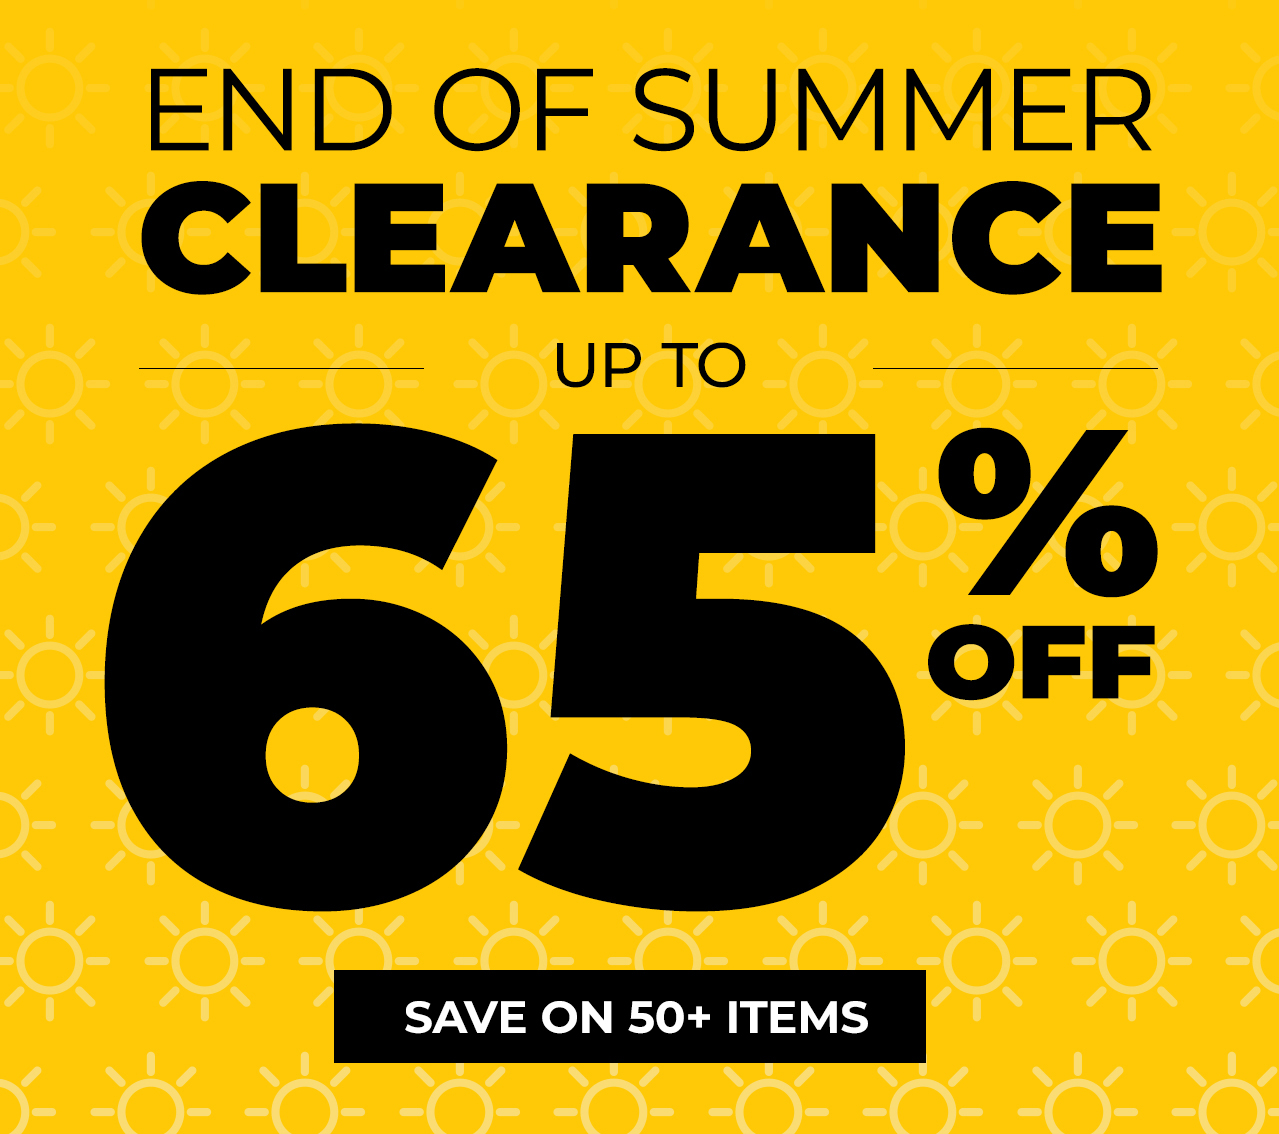 End of Summer Clearance| Up to 65% Off